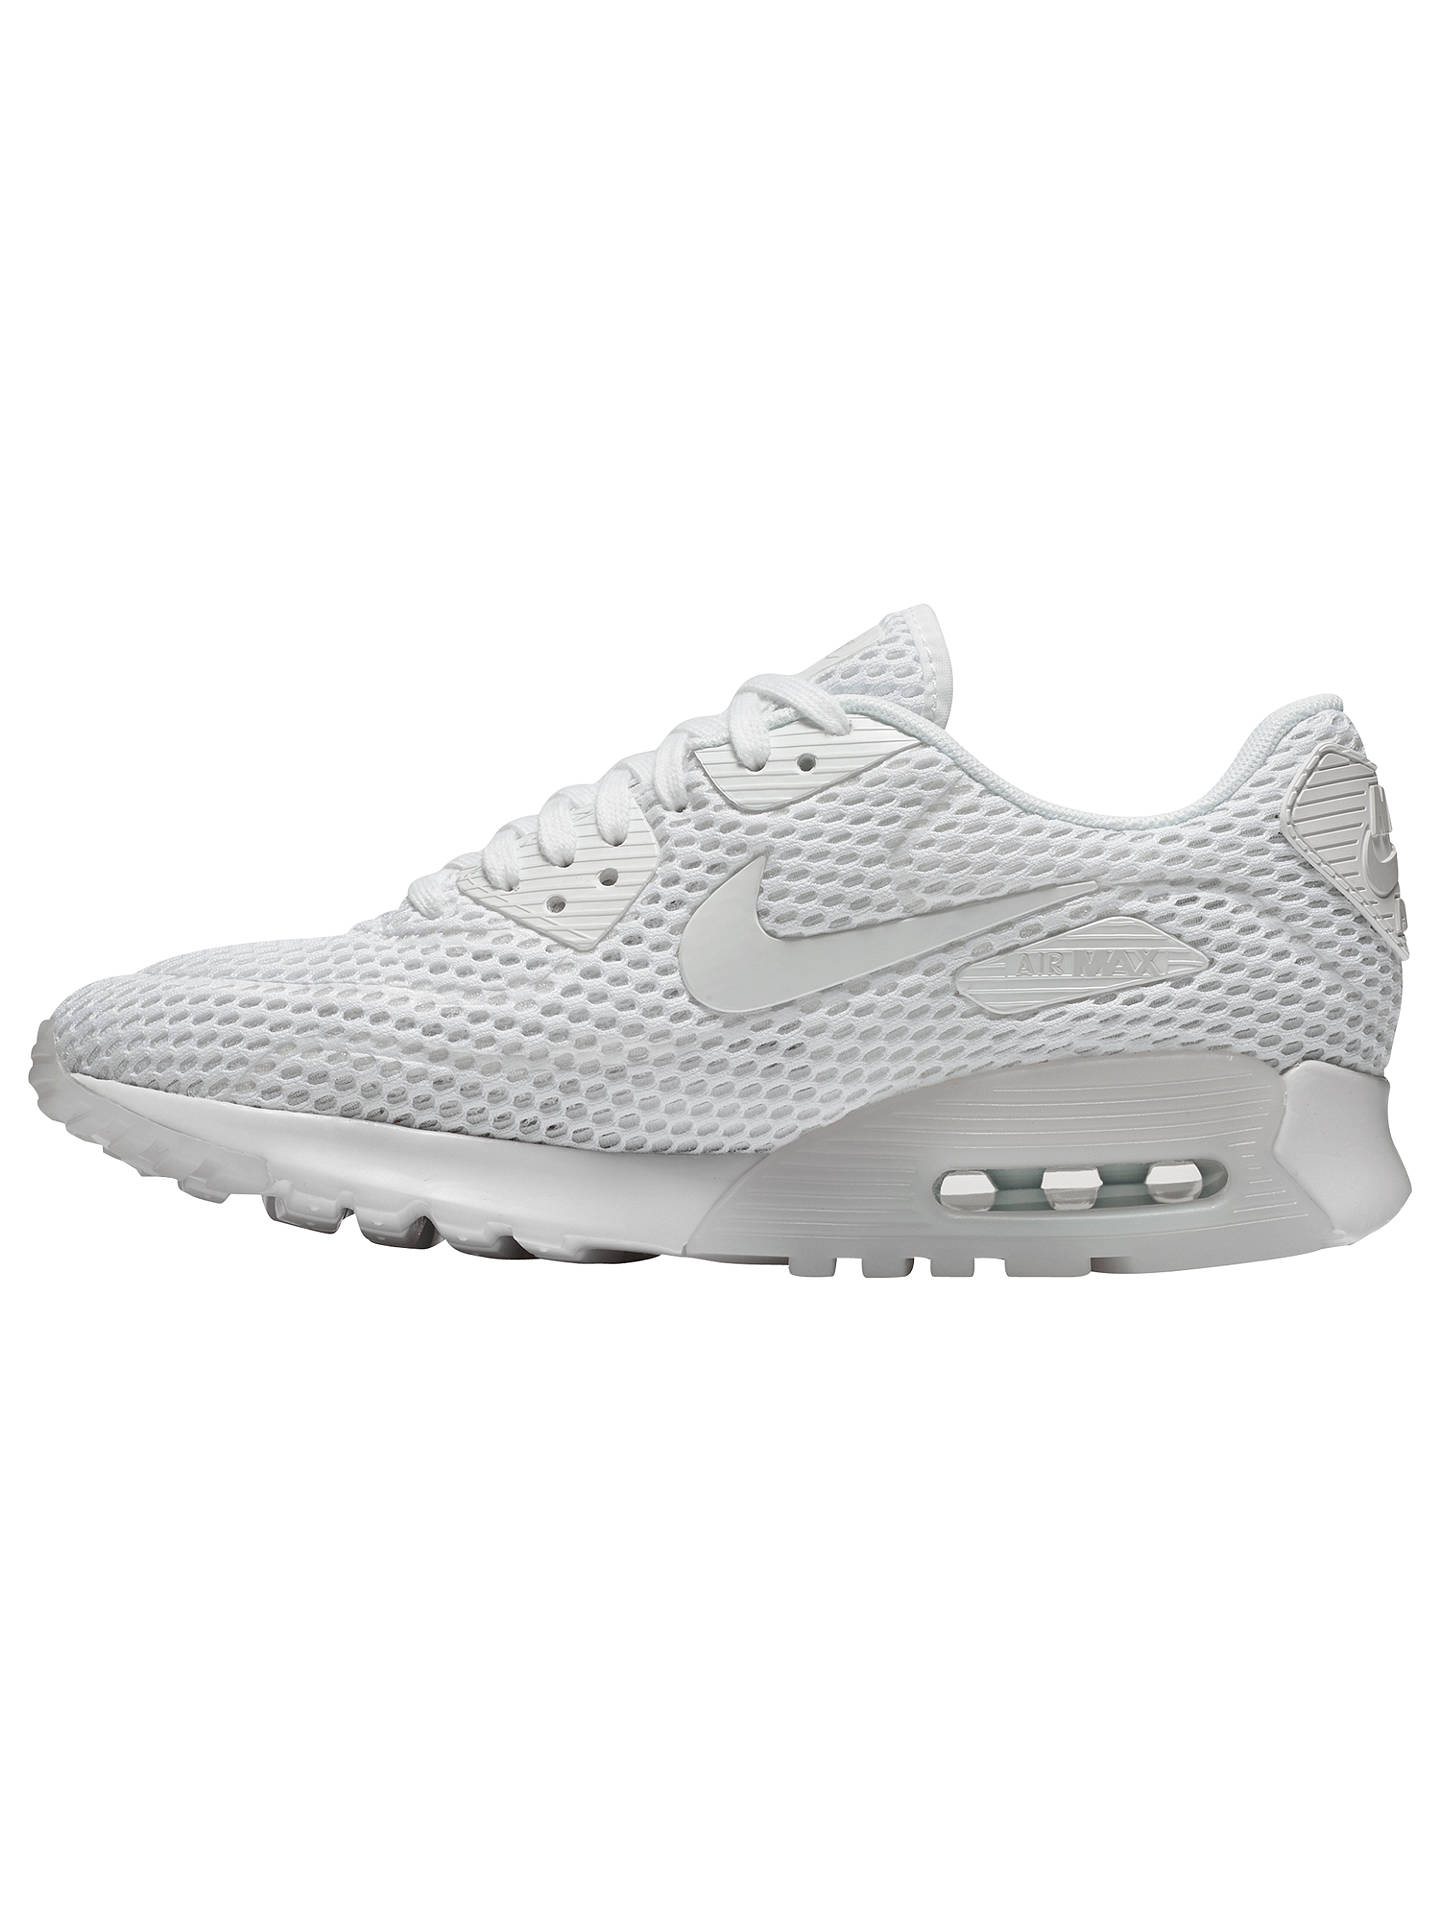 Nike Air Max 90 Ultra BR Women's Trainers, WhitePure